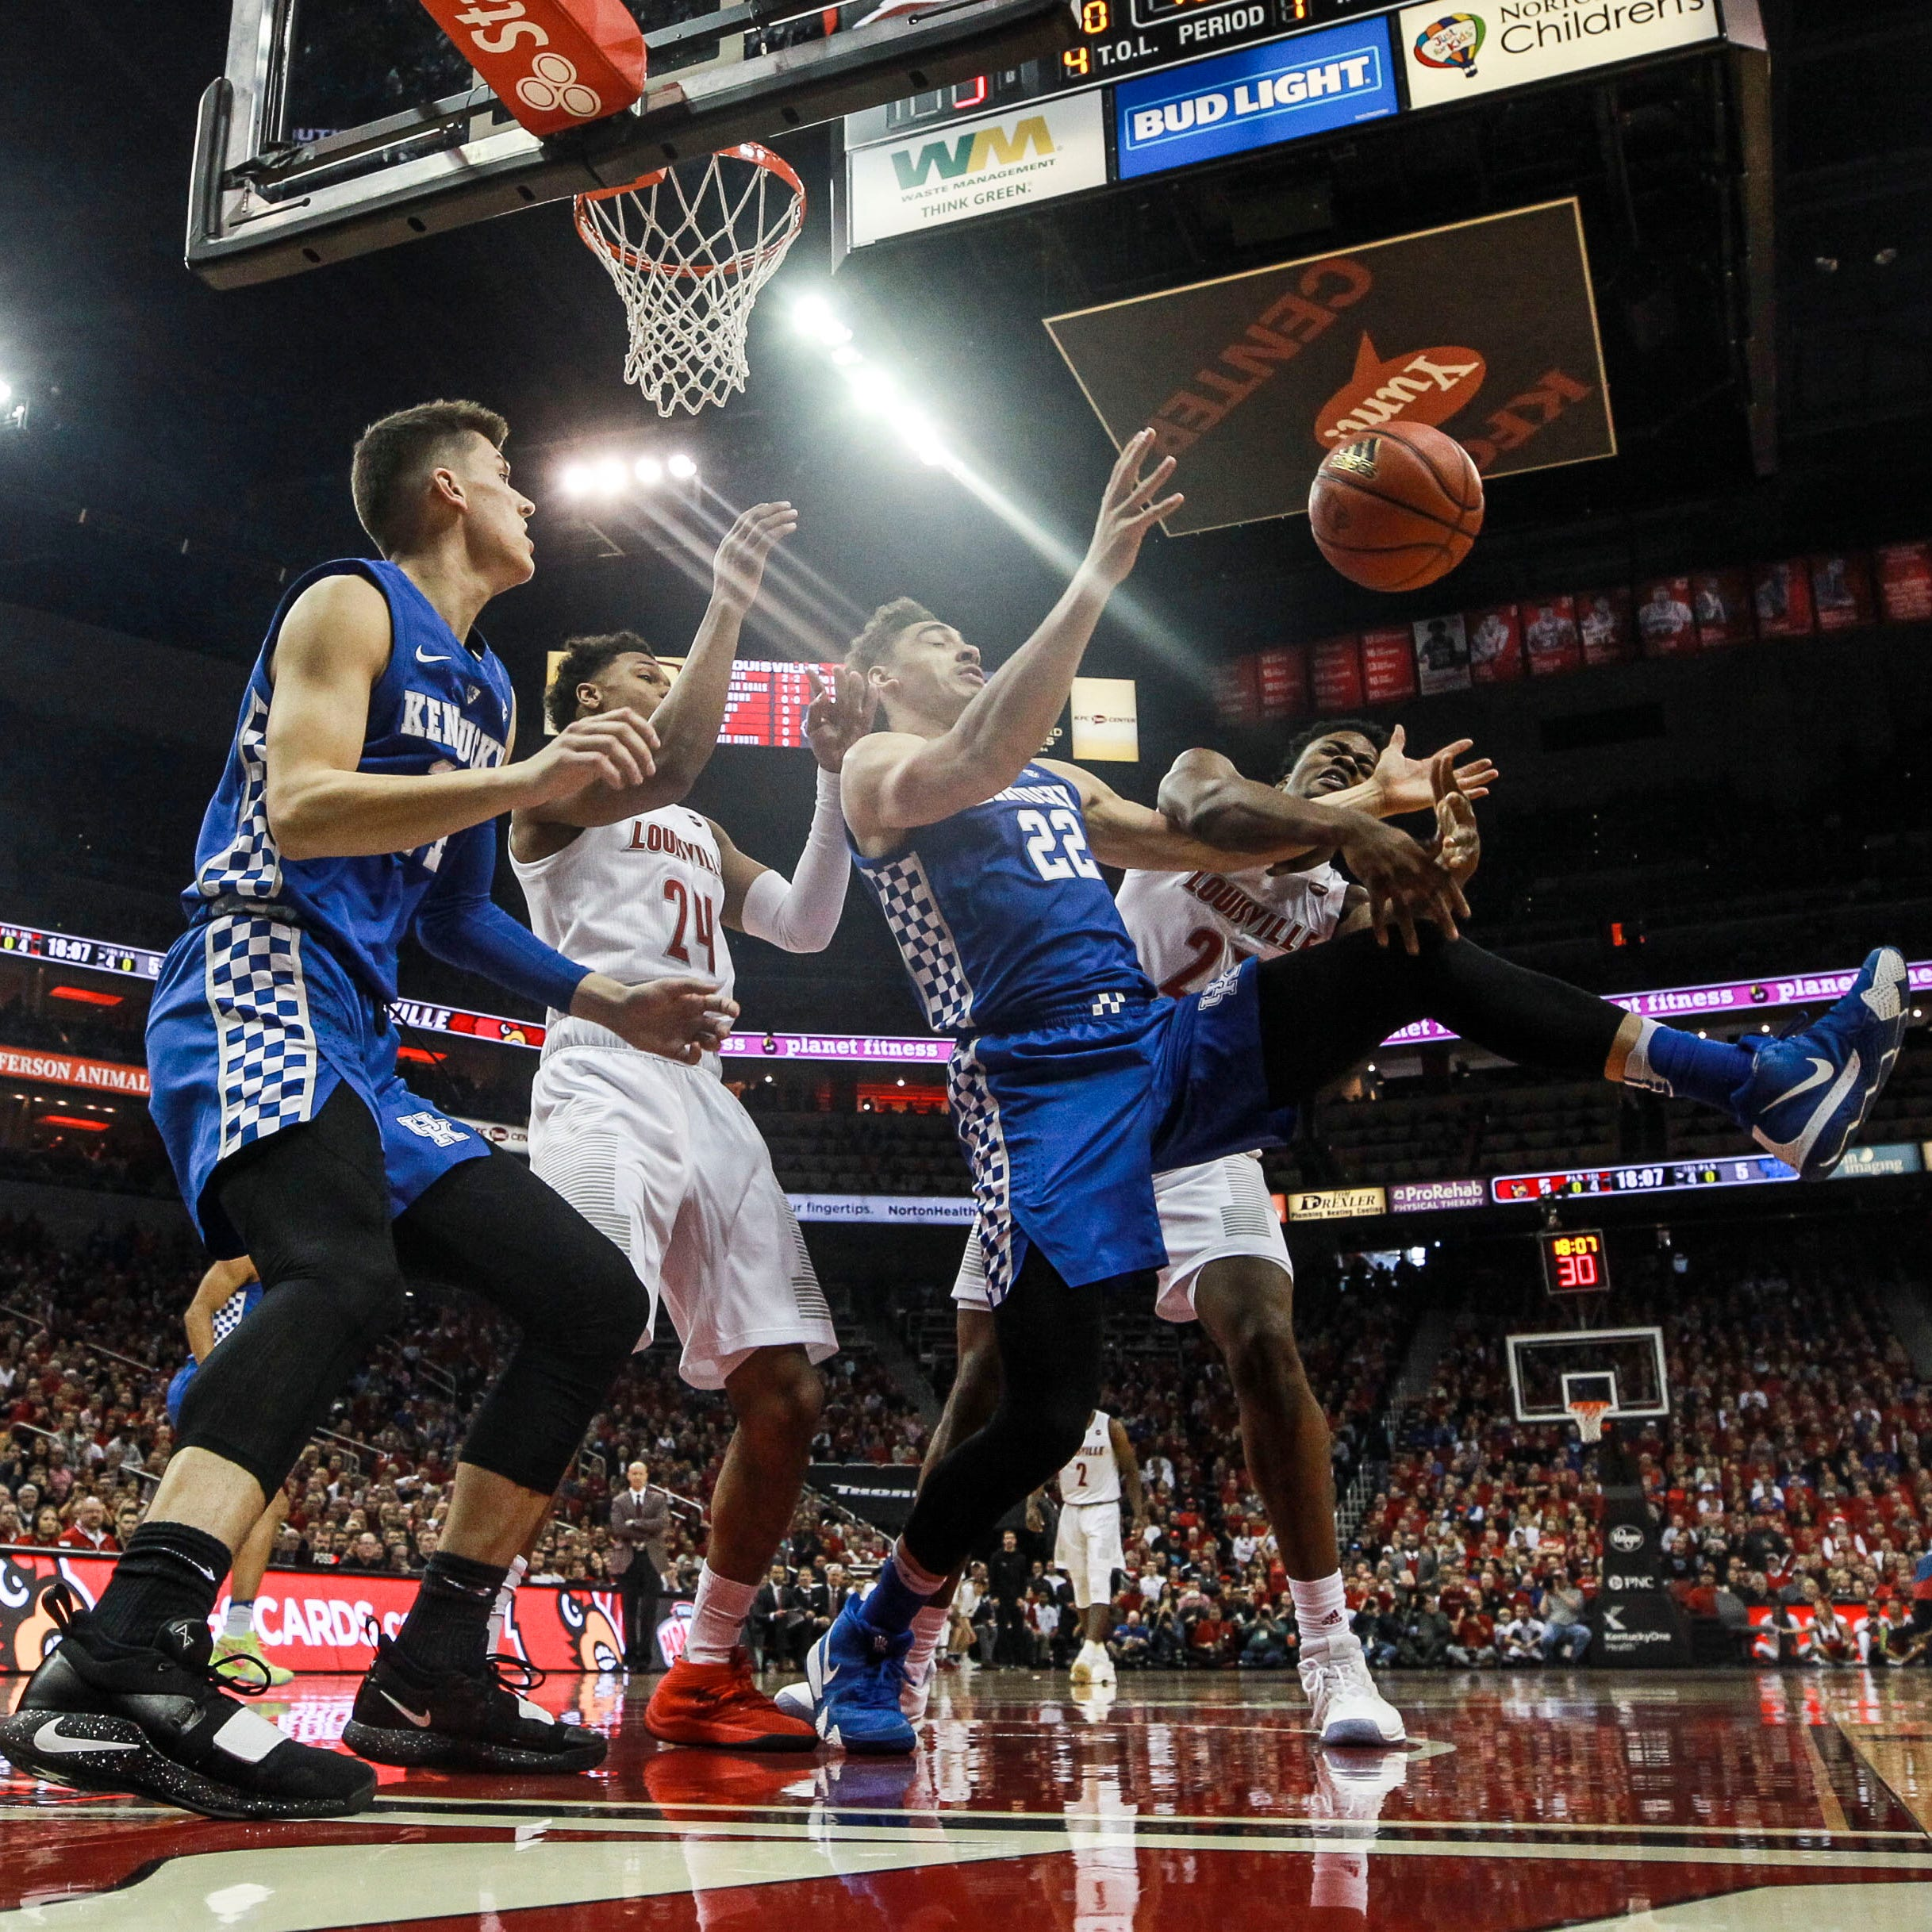 Kentucky's Reid Travis tries to grab a loose ball as Louisville's Steven Enoch pressures during the game against Louisville Saturday afternoon at the KFC Yum! Center in downtown Louisville. Dec. 29, 2018